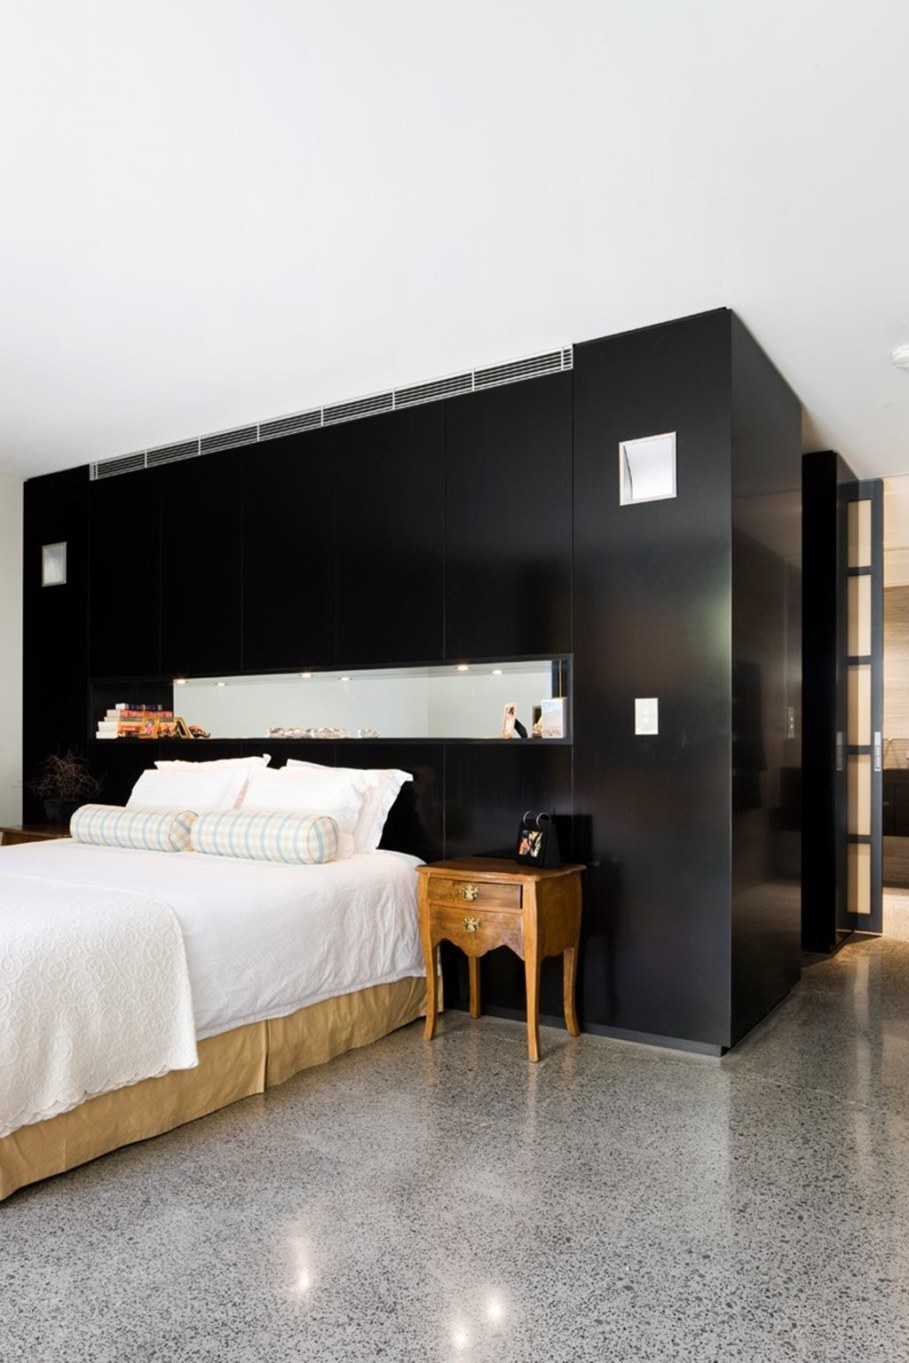 Grand loft house in Australia by Corben Architects studio - Bedroom 2